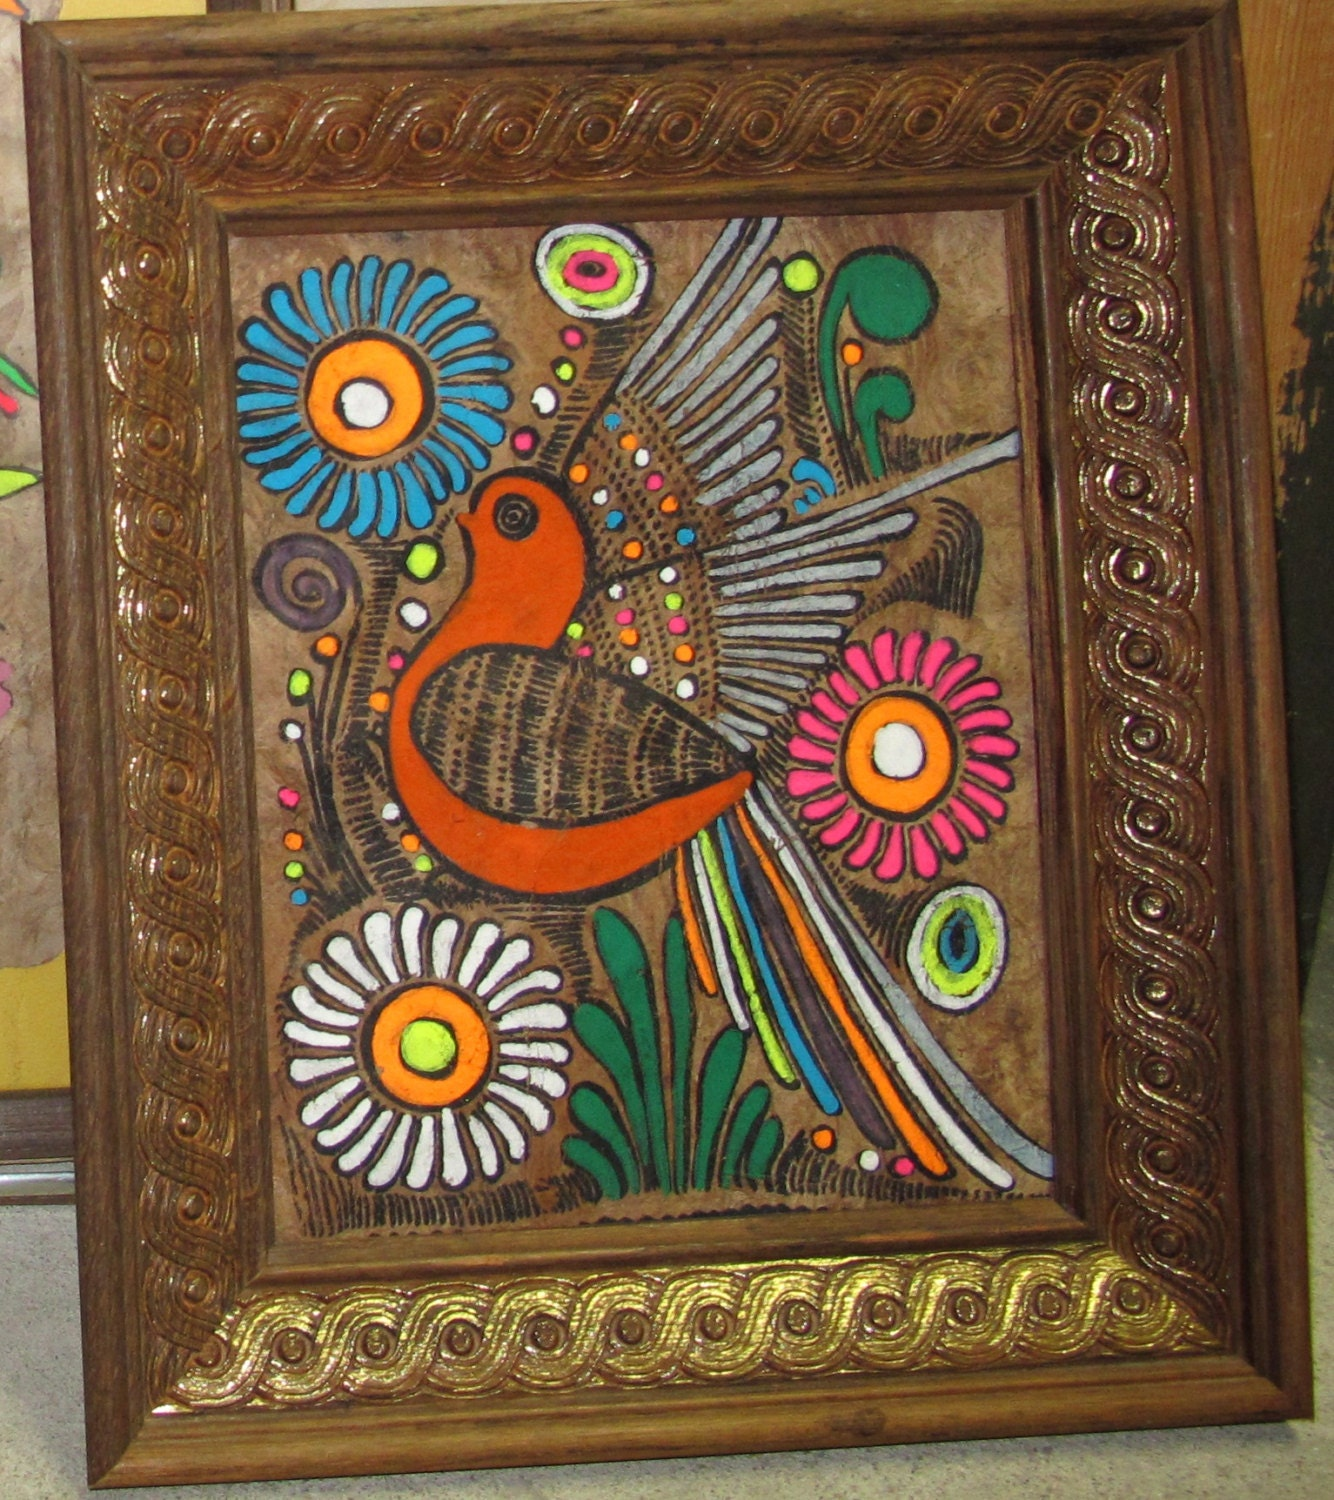 Vintage Psychadelic Retro Hippie Original Painting Bird Art on